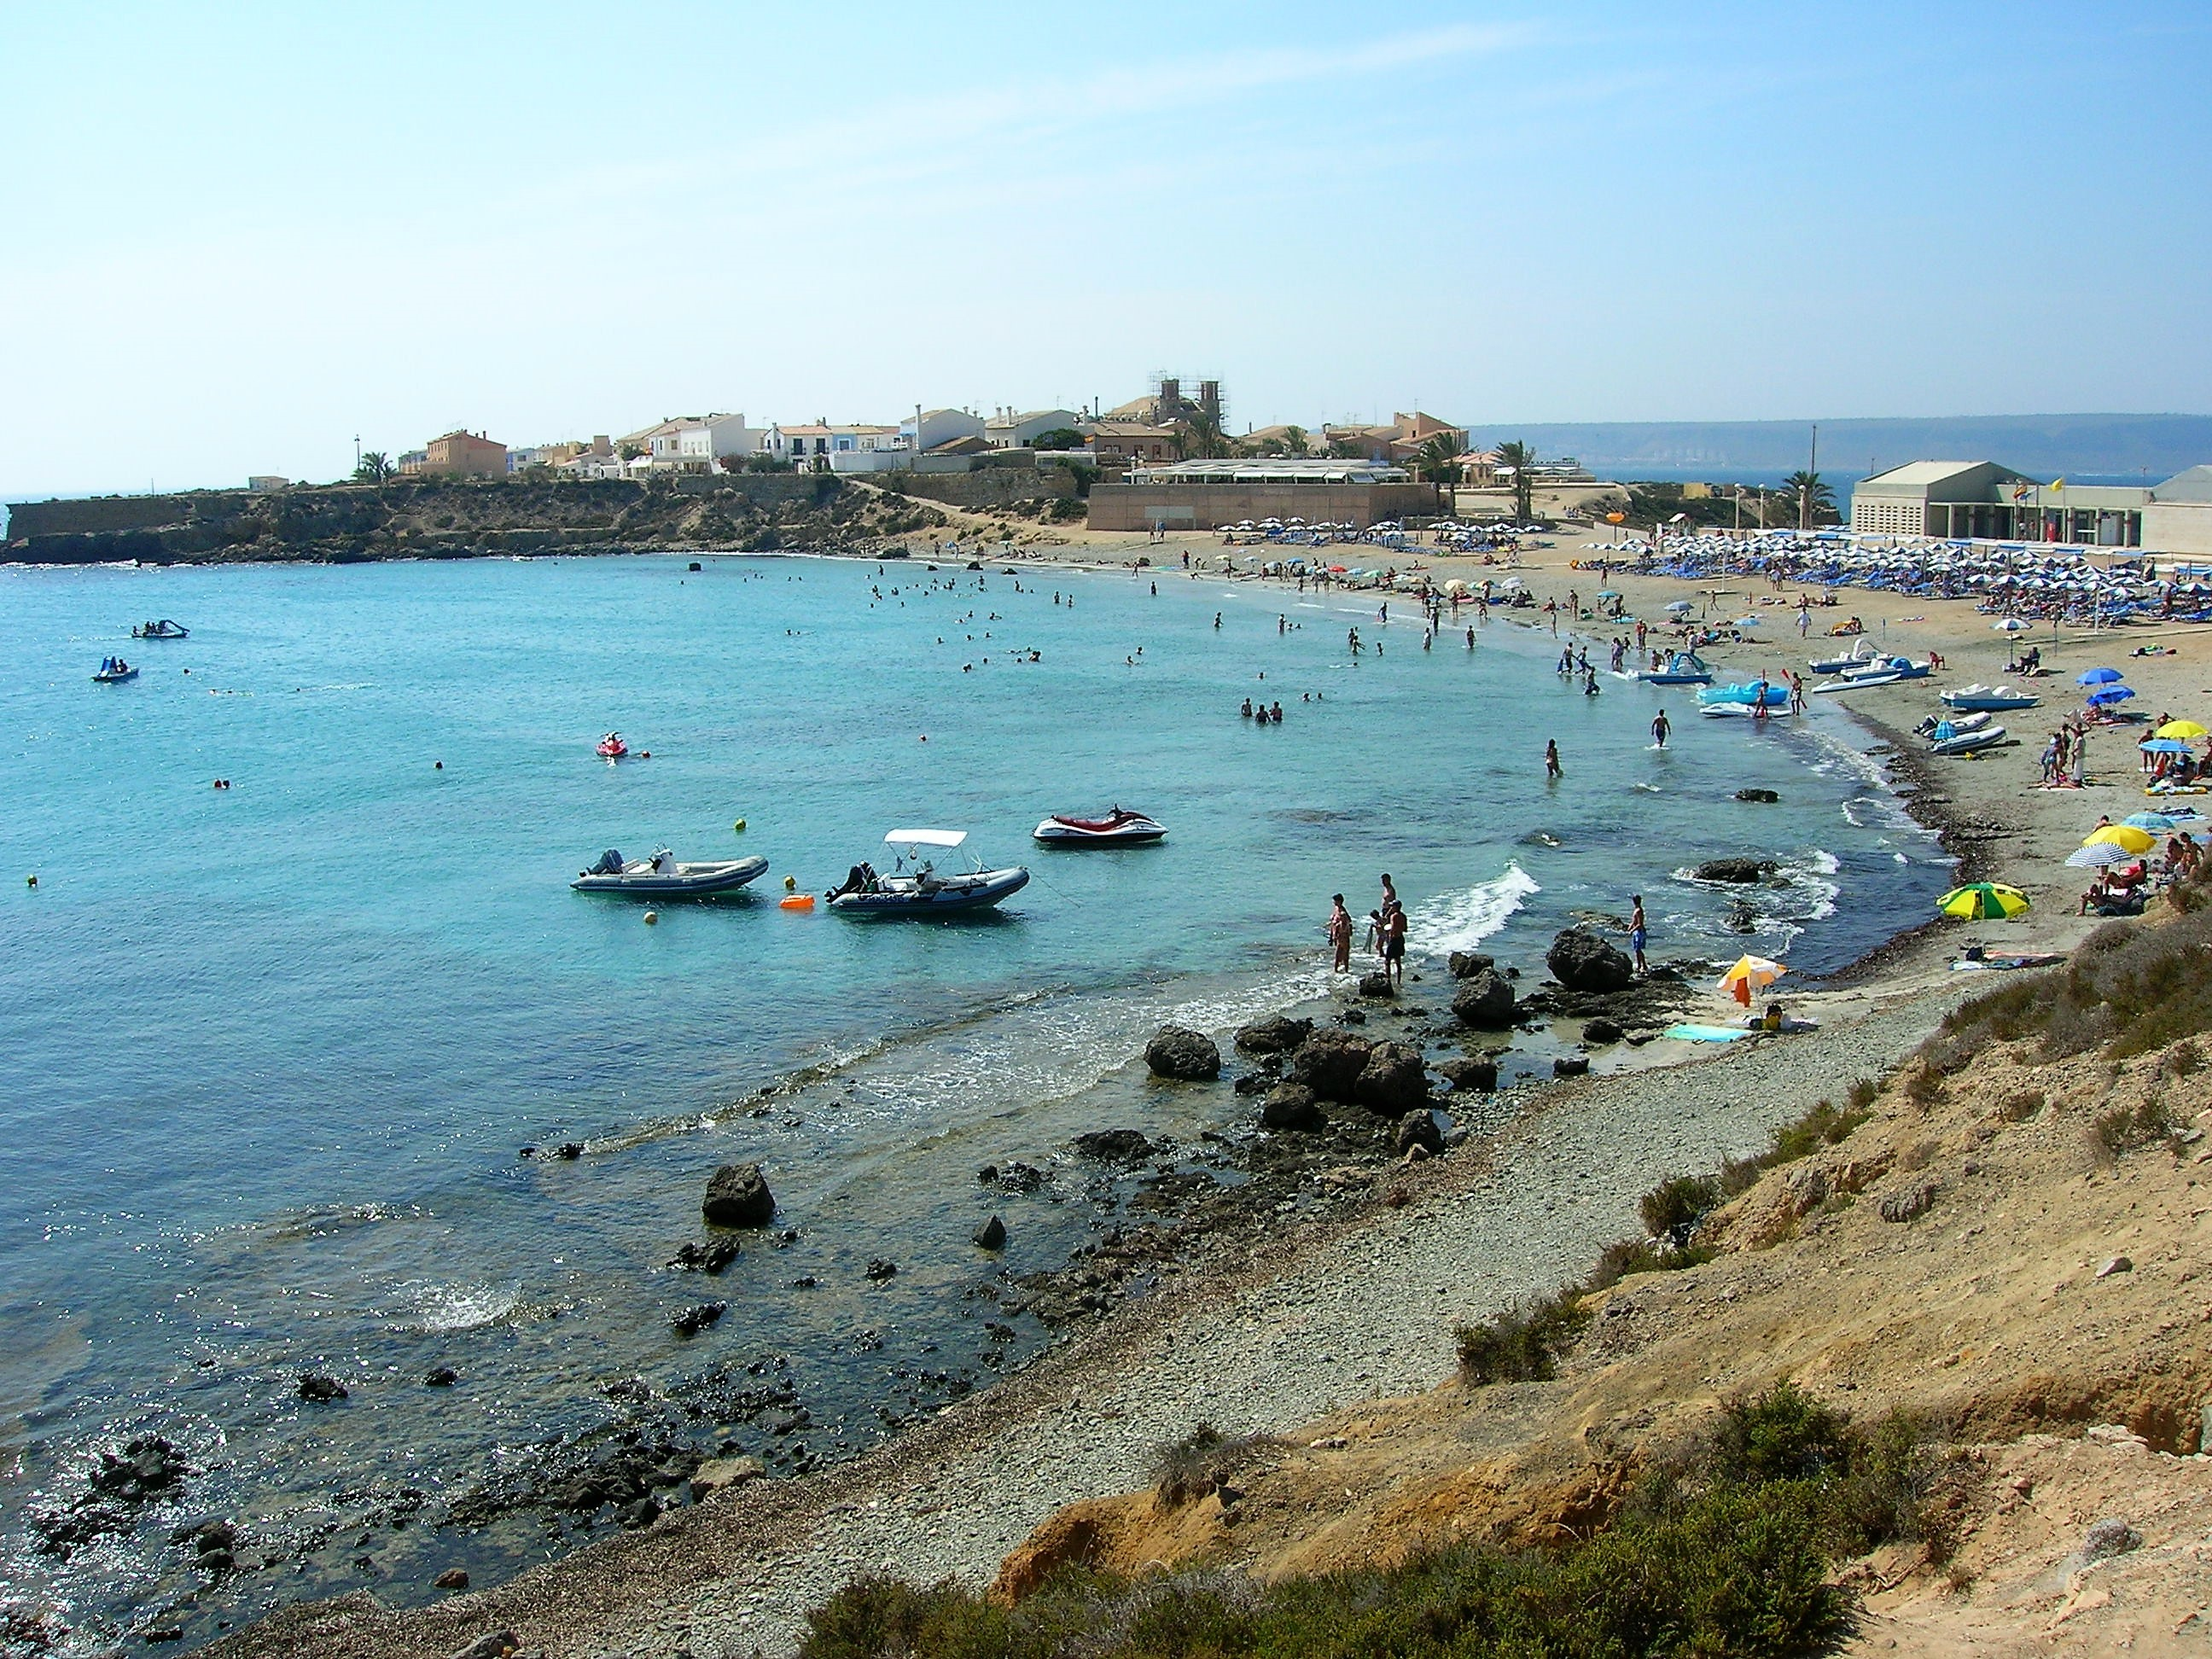 Image of a very busy isla tabarca in alicante. There is a beach with a lot of people and children, there are people swimming in the blue sea and more people sunbathing on the beach on towels, under umbrellas and some people are also having a picnic